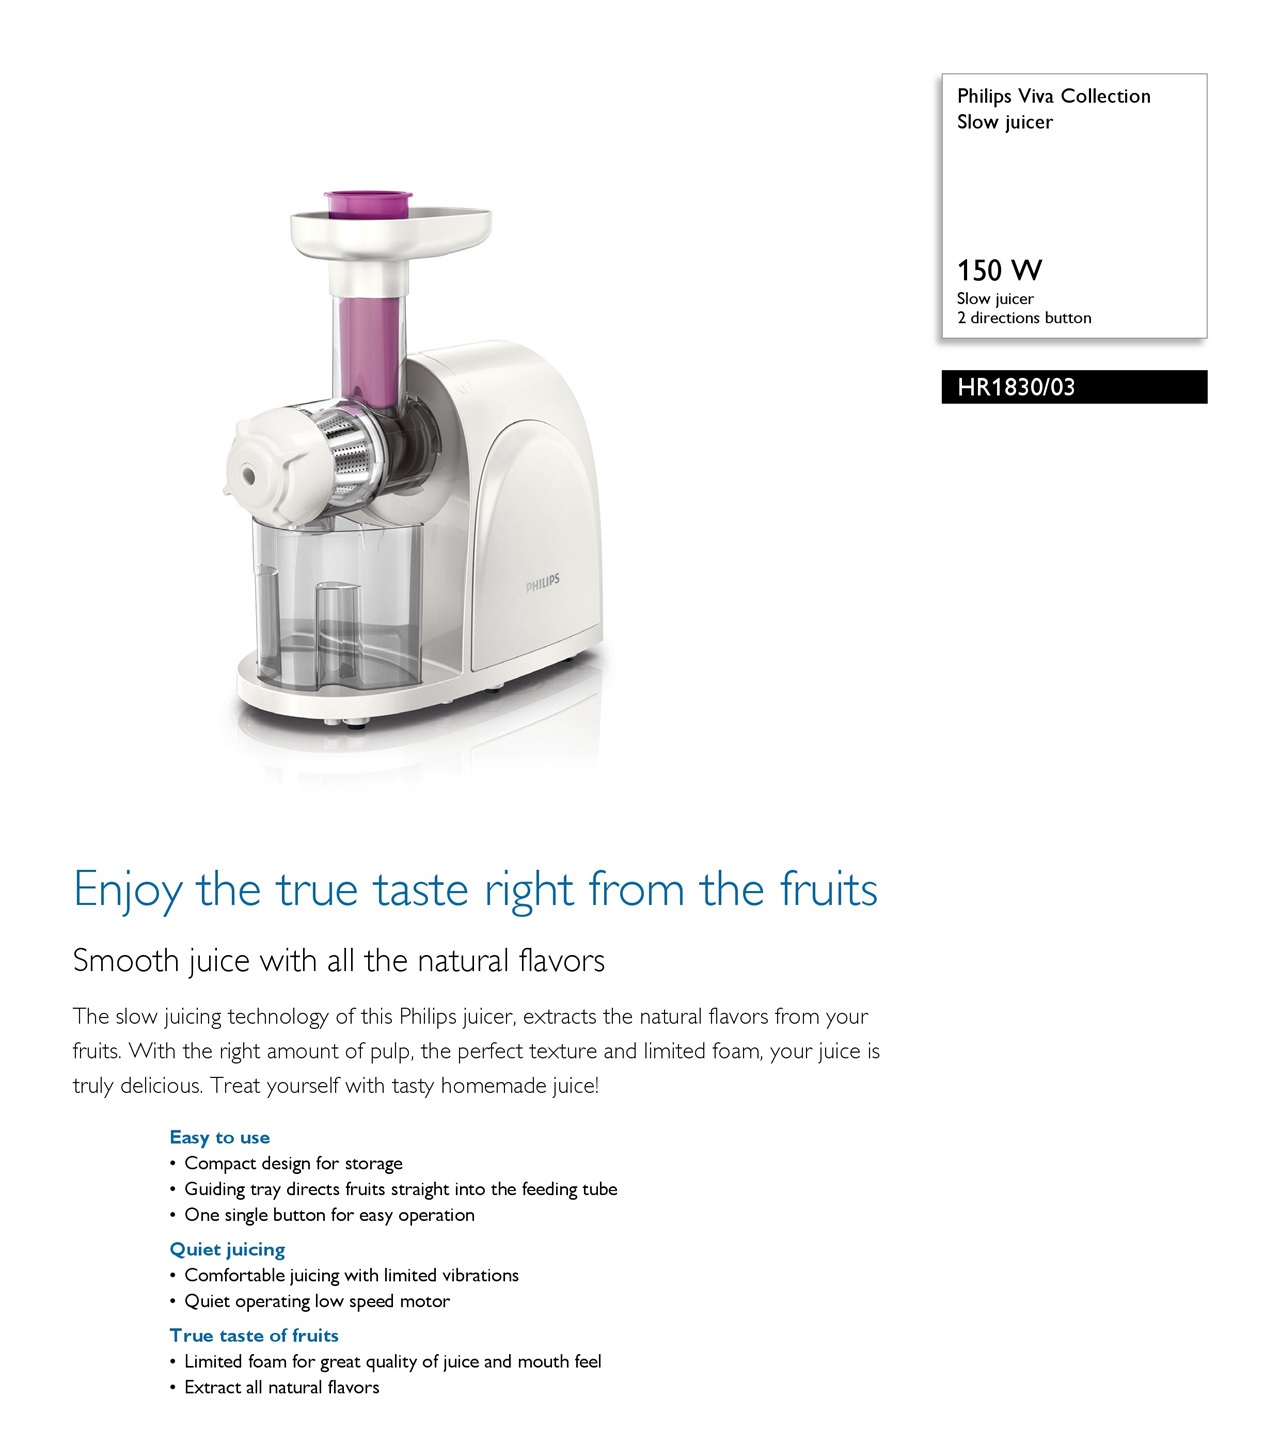 Viva Collection Slow Juicer Review : ET SOUND ENTERPRISE PTE LTD. Philips viva Collection Slow Juicer HR1830